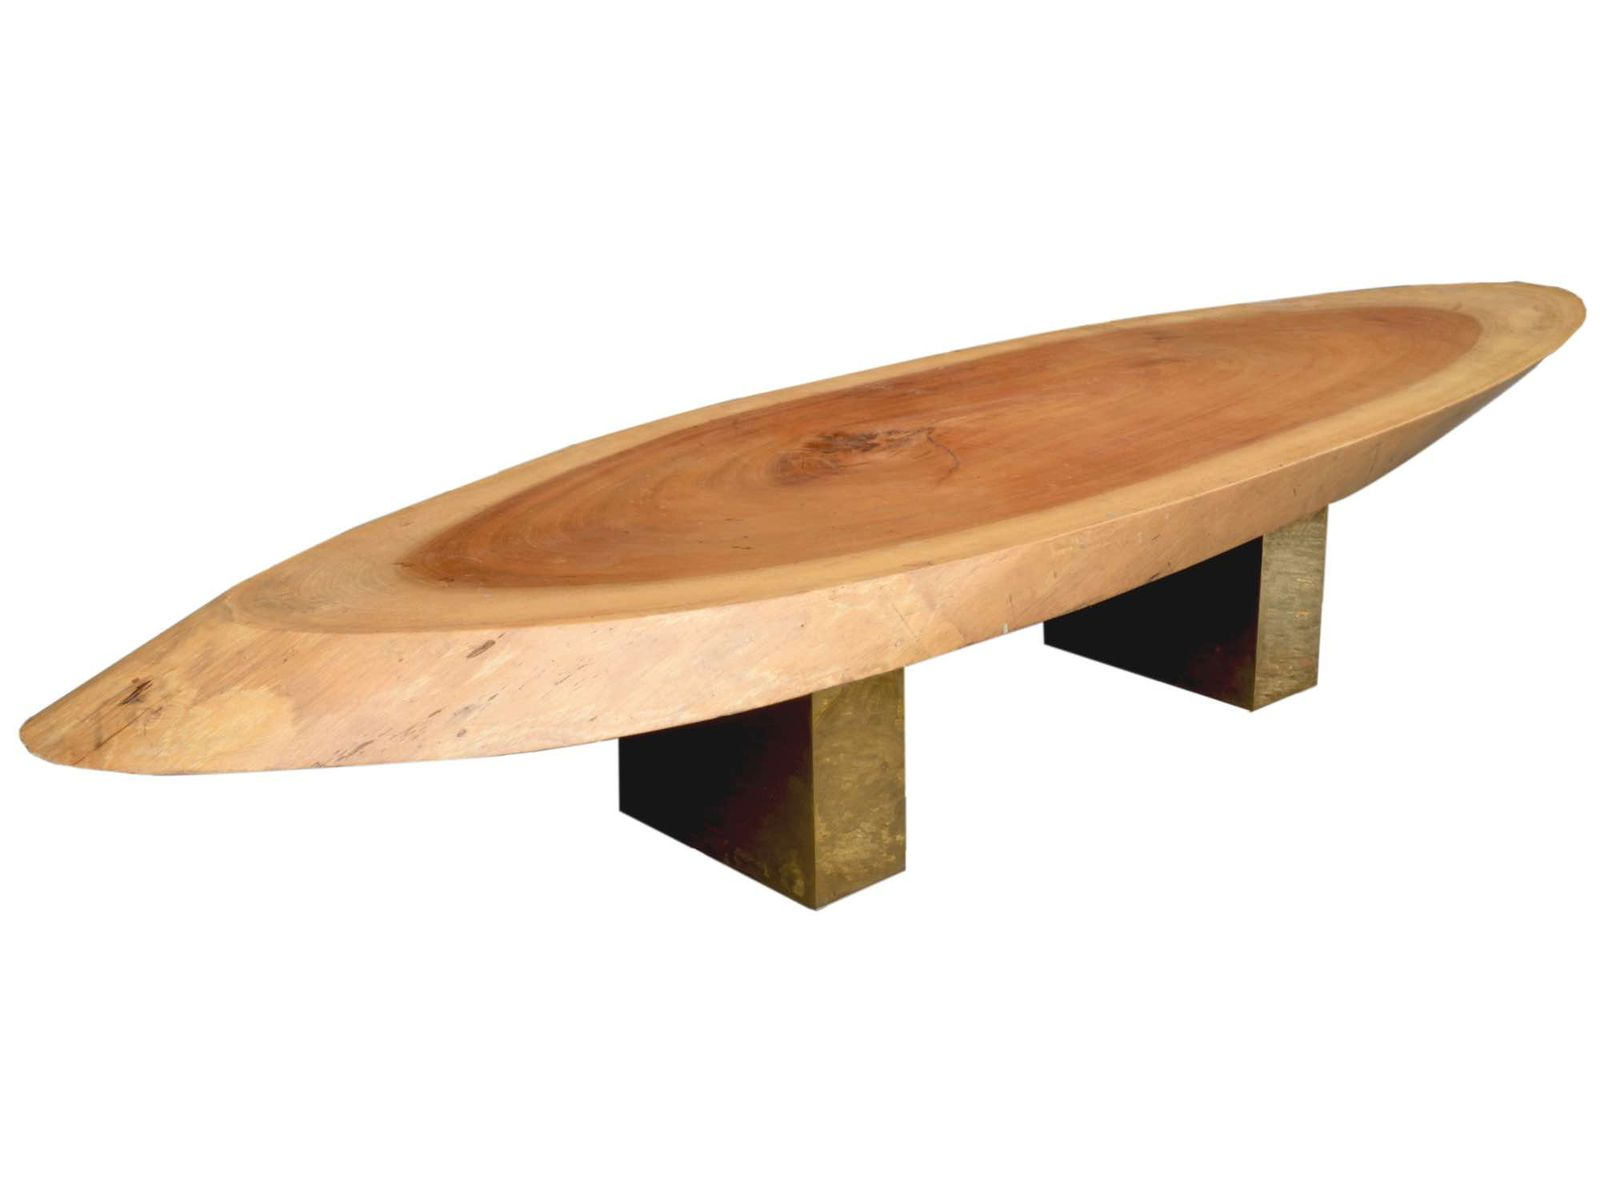 Natural wood coffee tables - Italian Natural Wooden Coffee Table 1970s 10 5 689 00 Price Per Piece